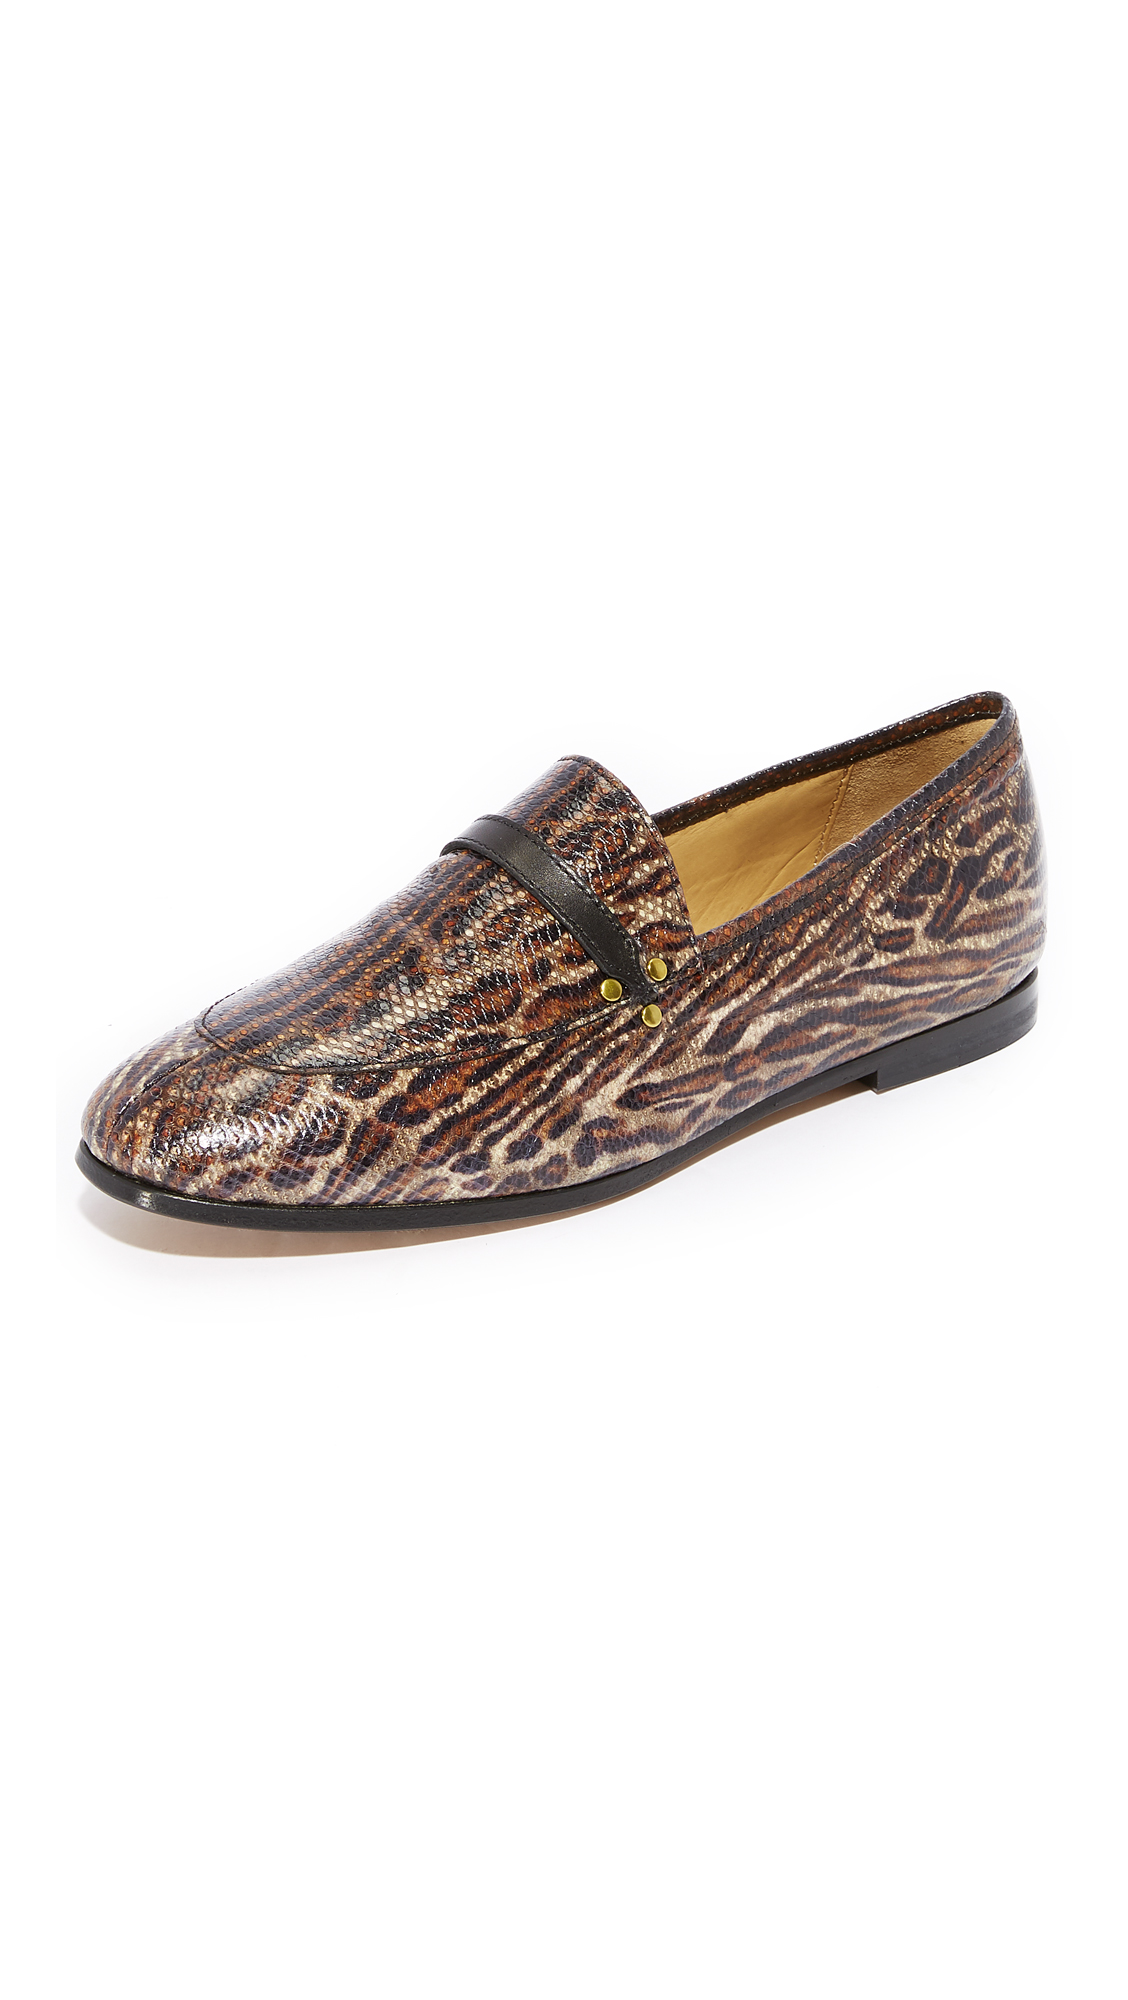 Jerome Dreyfuss Gabi Loafers - Leopard